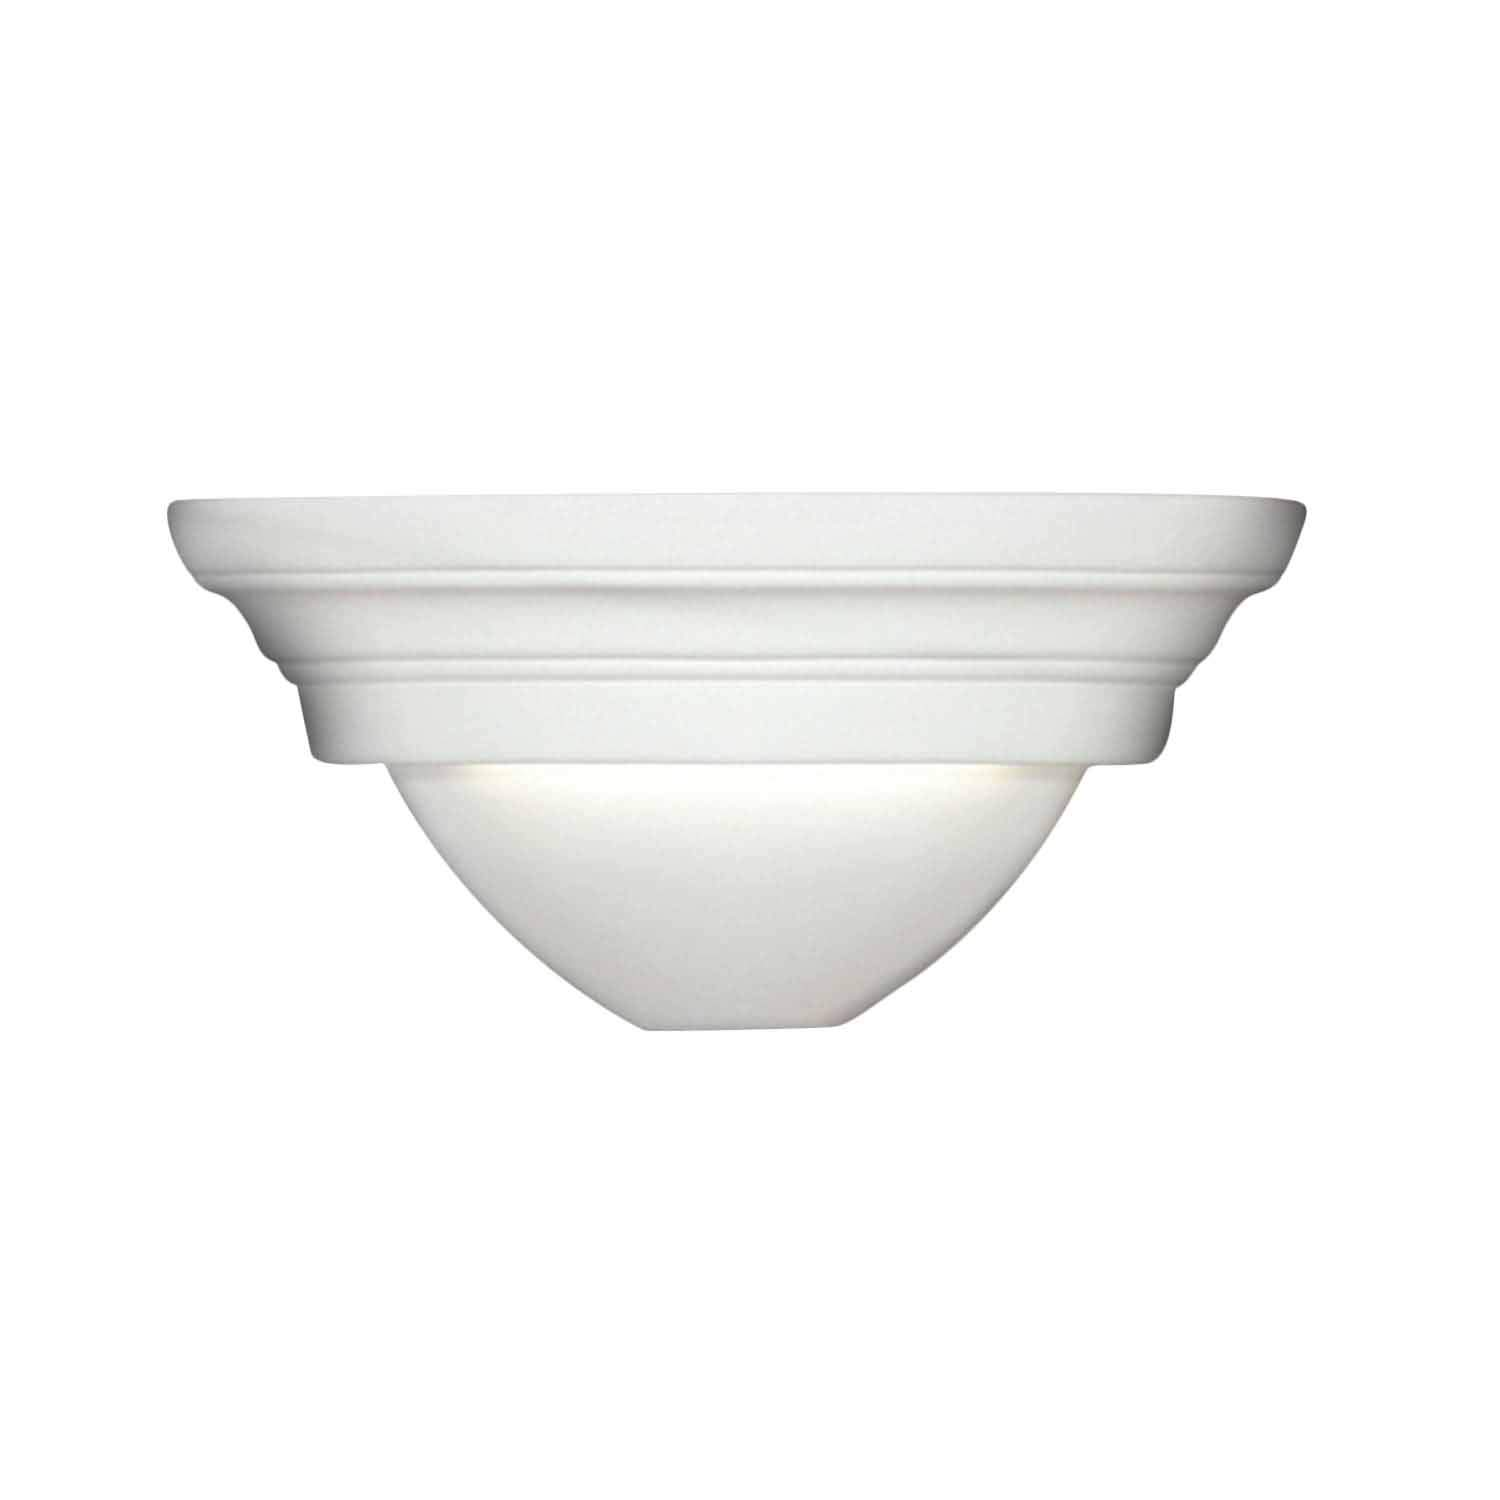 A19 Ibiza Corner Sconce, 8 by 11.5 by 5.5'', Bisque